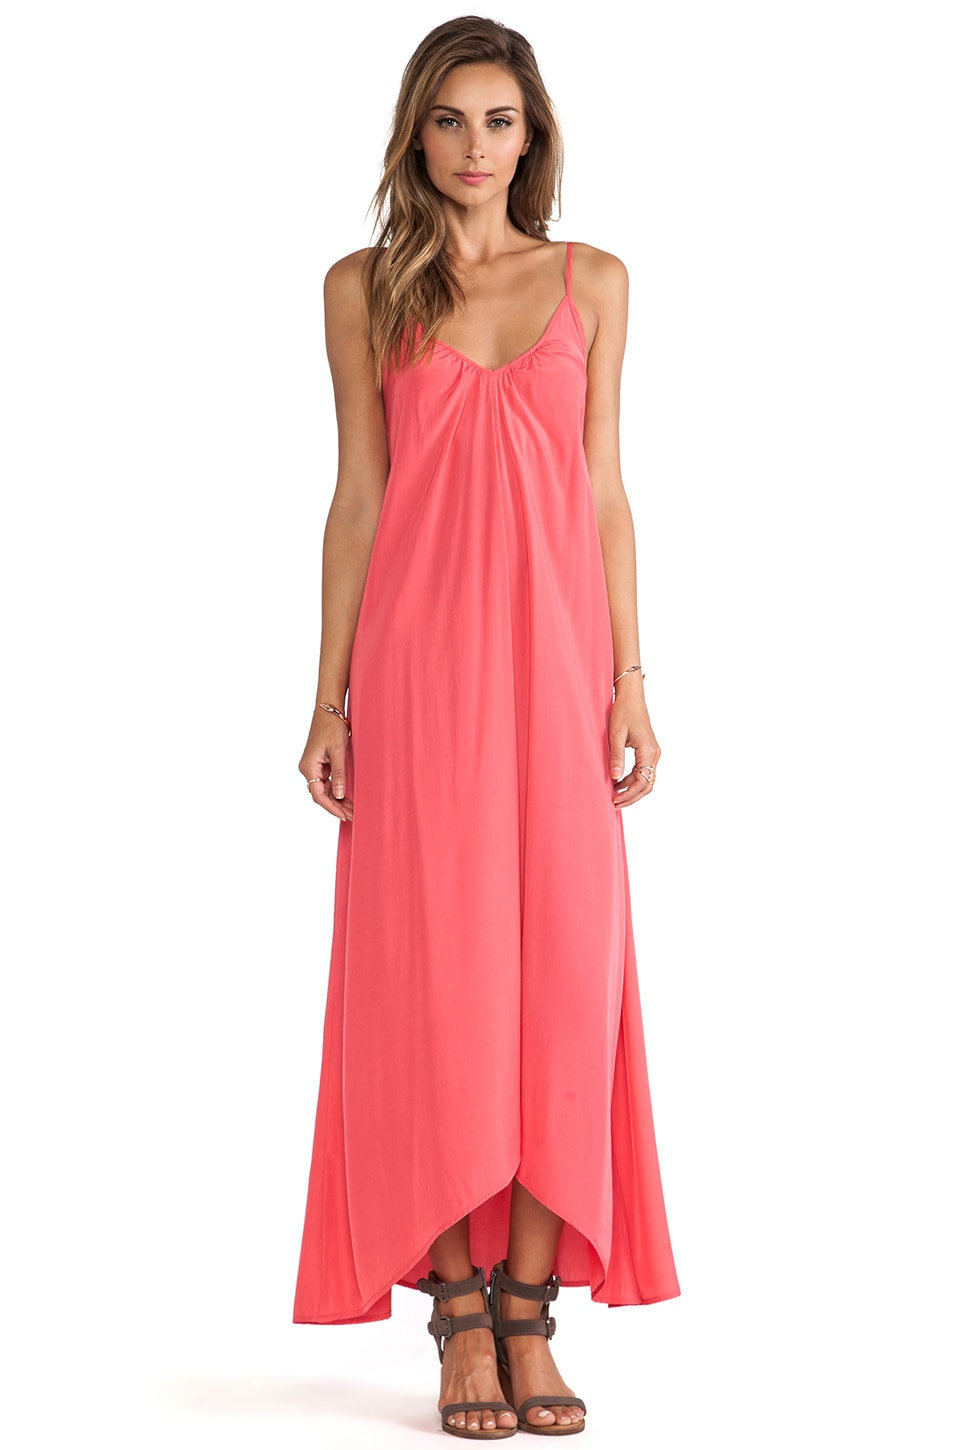 Pink Stitch Resort Maxi Dress in Lipstick